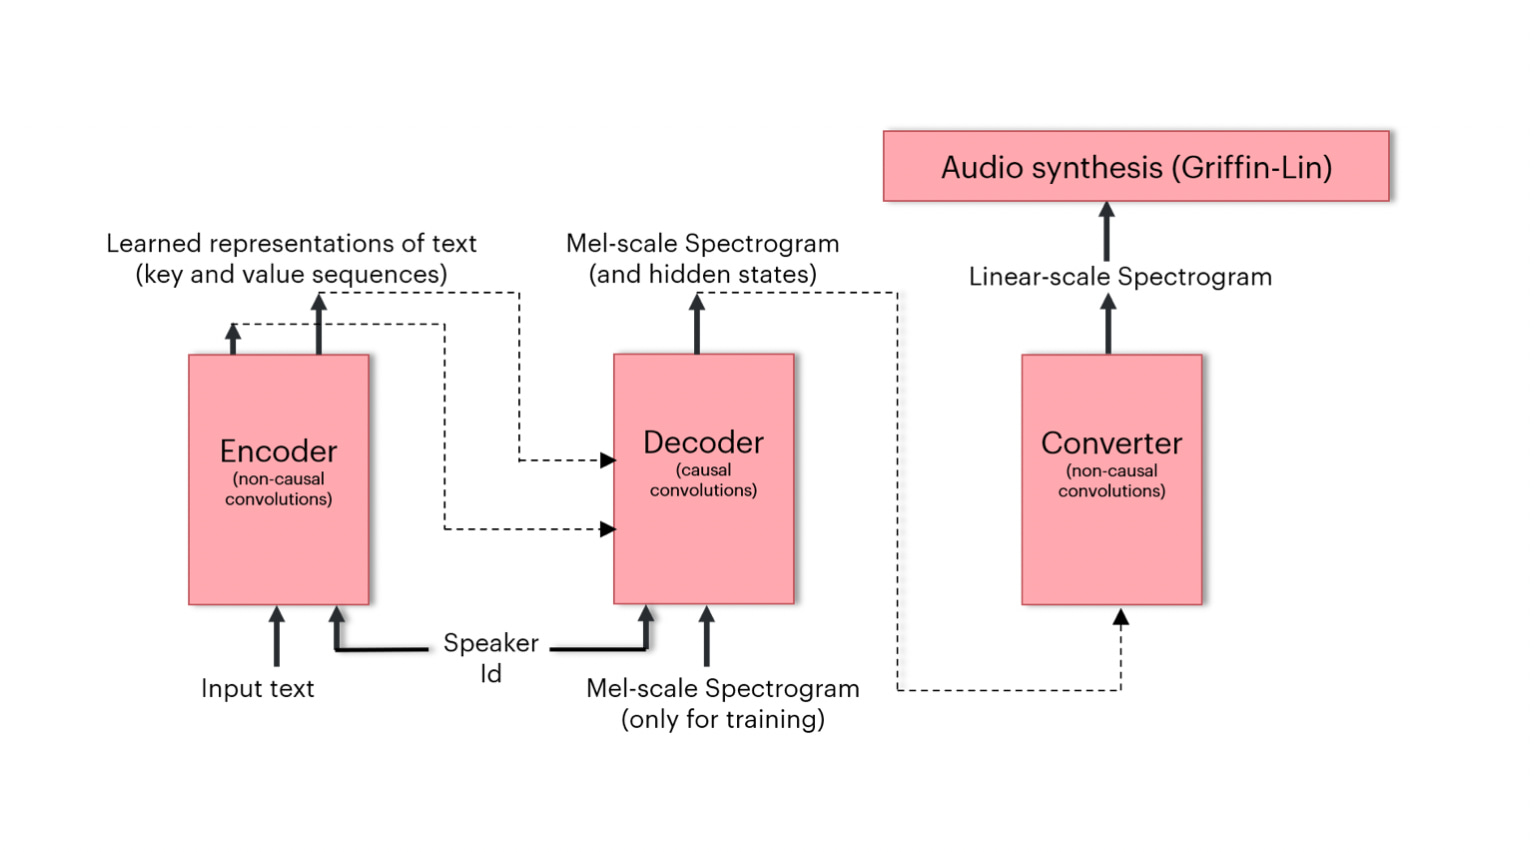 High Level Architecture of the Deep Voice 3 Model